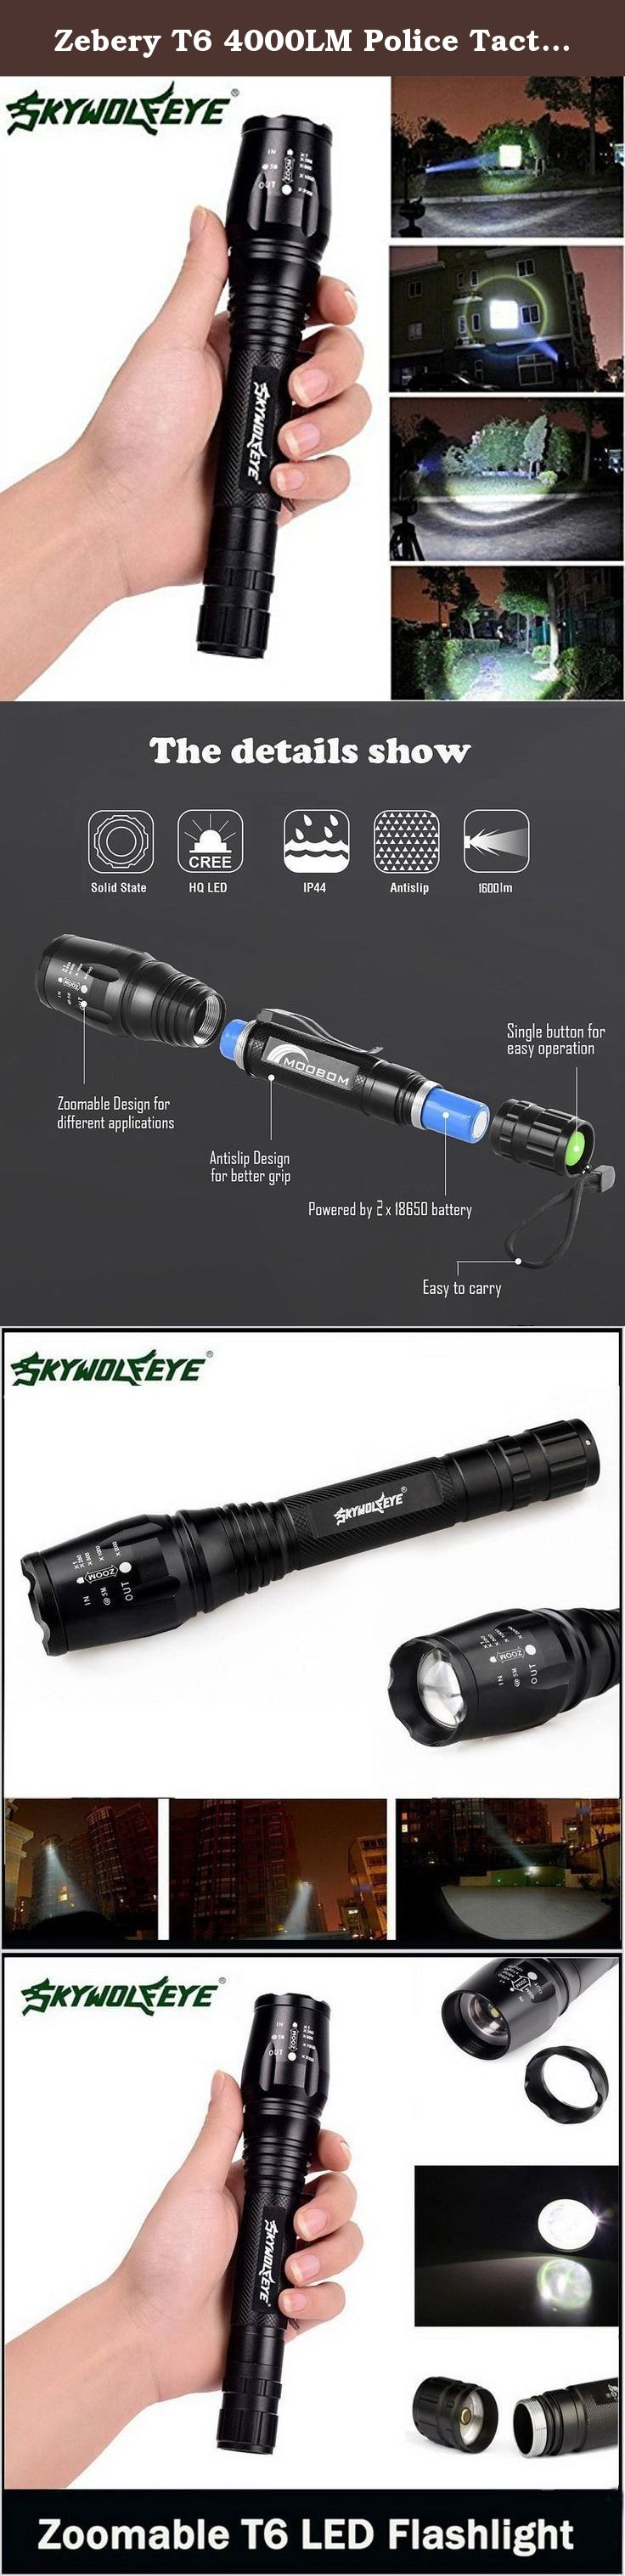 Zebery T6 4000LM Police Tactical LED Flashlight Light Torch Lamp for Outdoor Camping ,Black.